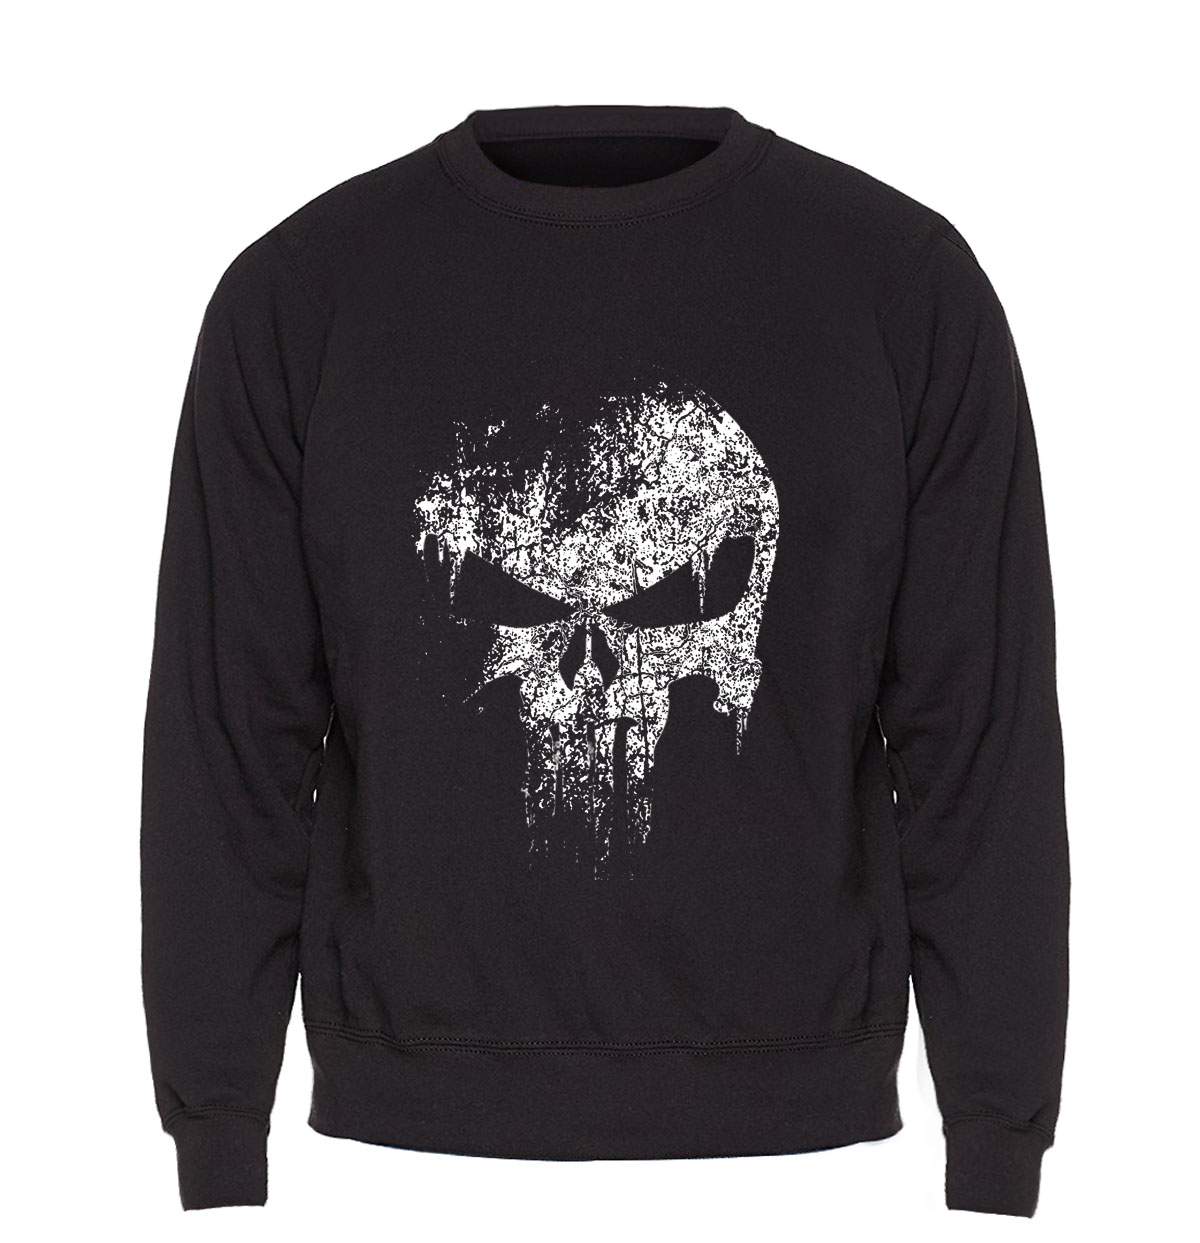 Skull Sweatshirt Men Print New Comics Supper Hero Hoodie Black Sweatshirts Fleece Warm Hip Hop Streetwear Mens